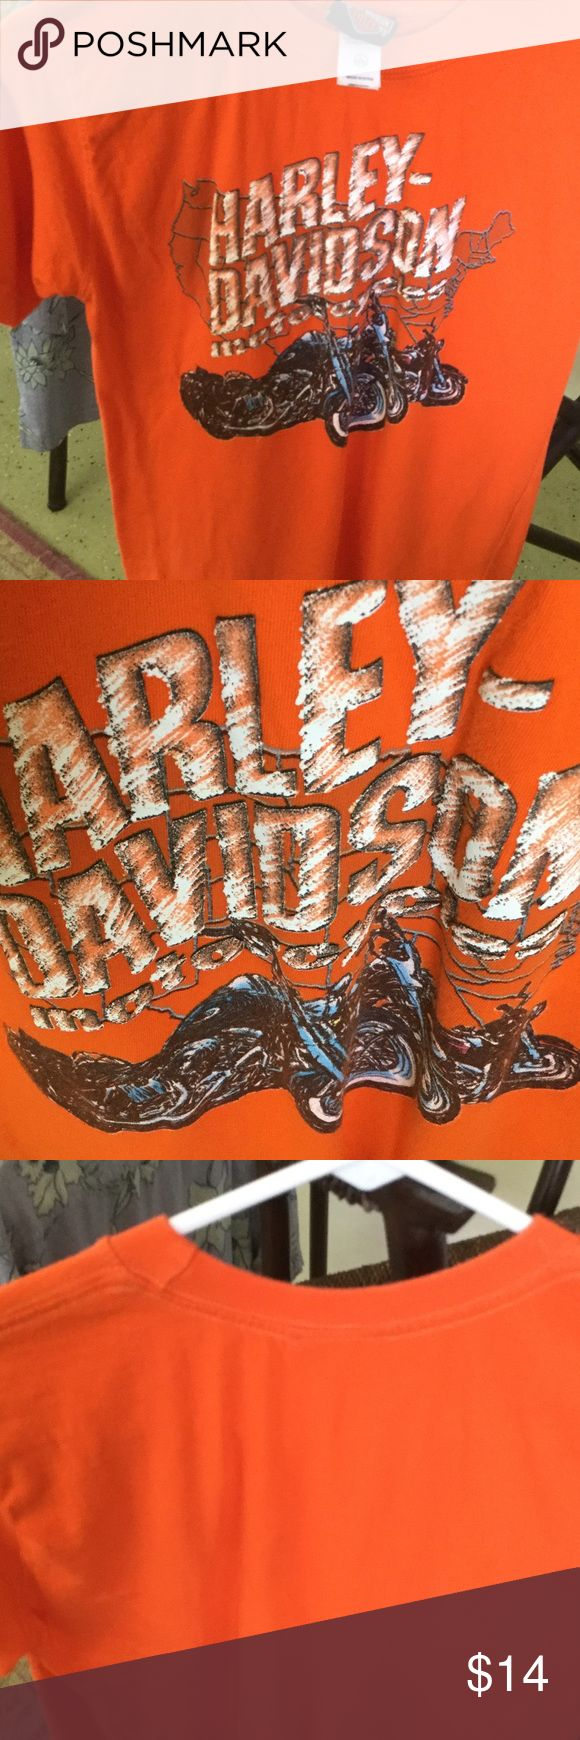 Harley Davidson T Shirt Orange with white/ black  writing, says size 14-16 large, I think it would be a small for women, no stains or rips Harley-Davidson Tops Tees - Short Sleeve